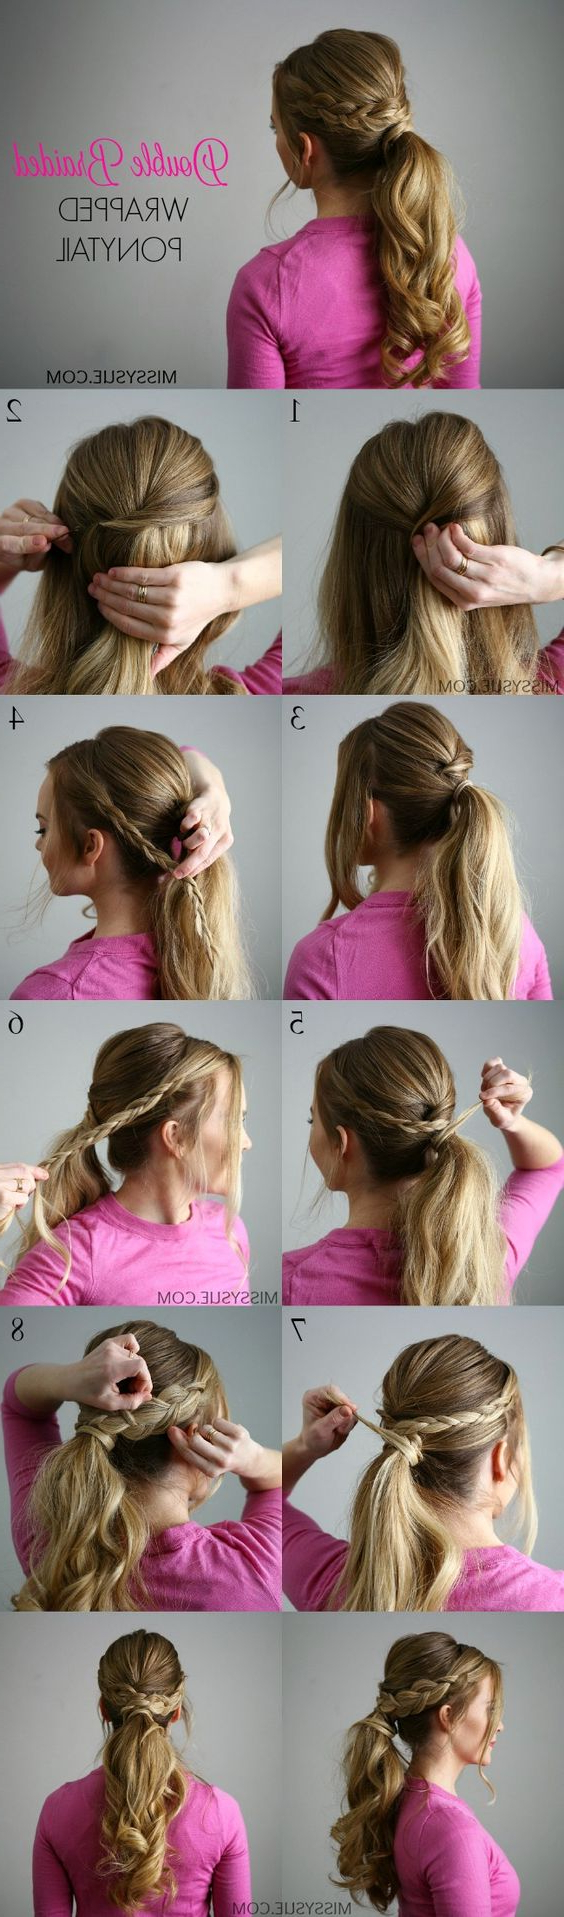 21 Tutorials For Styling Wrap Around Braids – Pretty Designs For Best And Newest Wrapped Ponytail Braid Hairstyles (View 7 of 20)